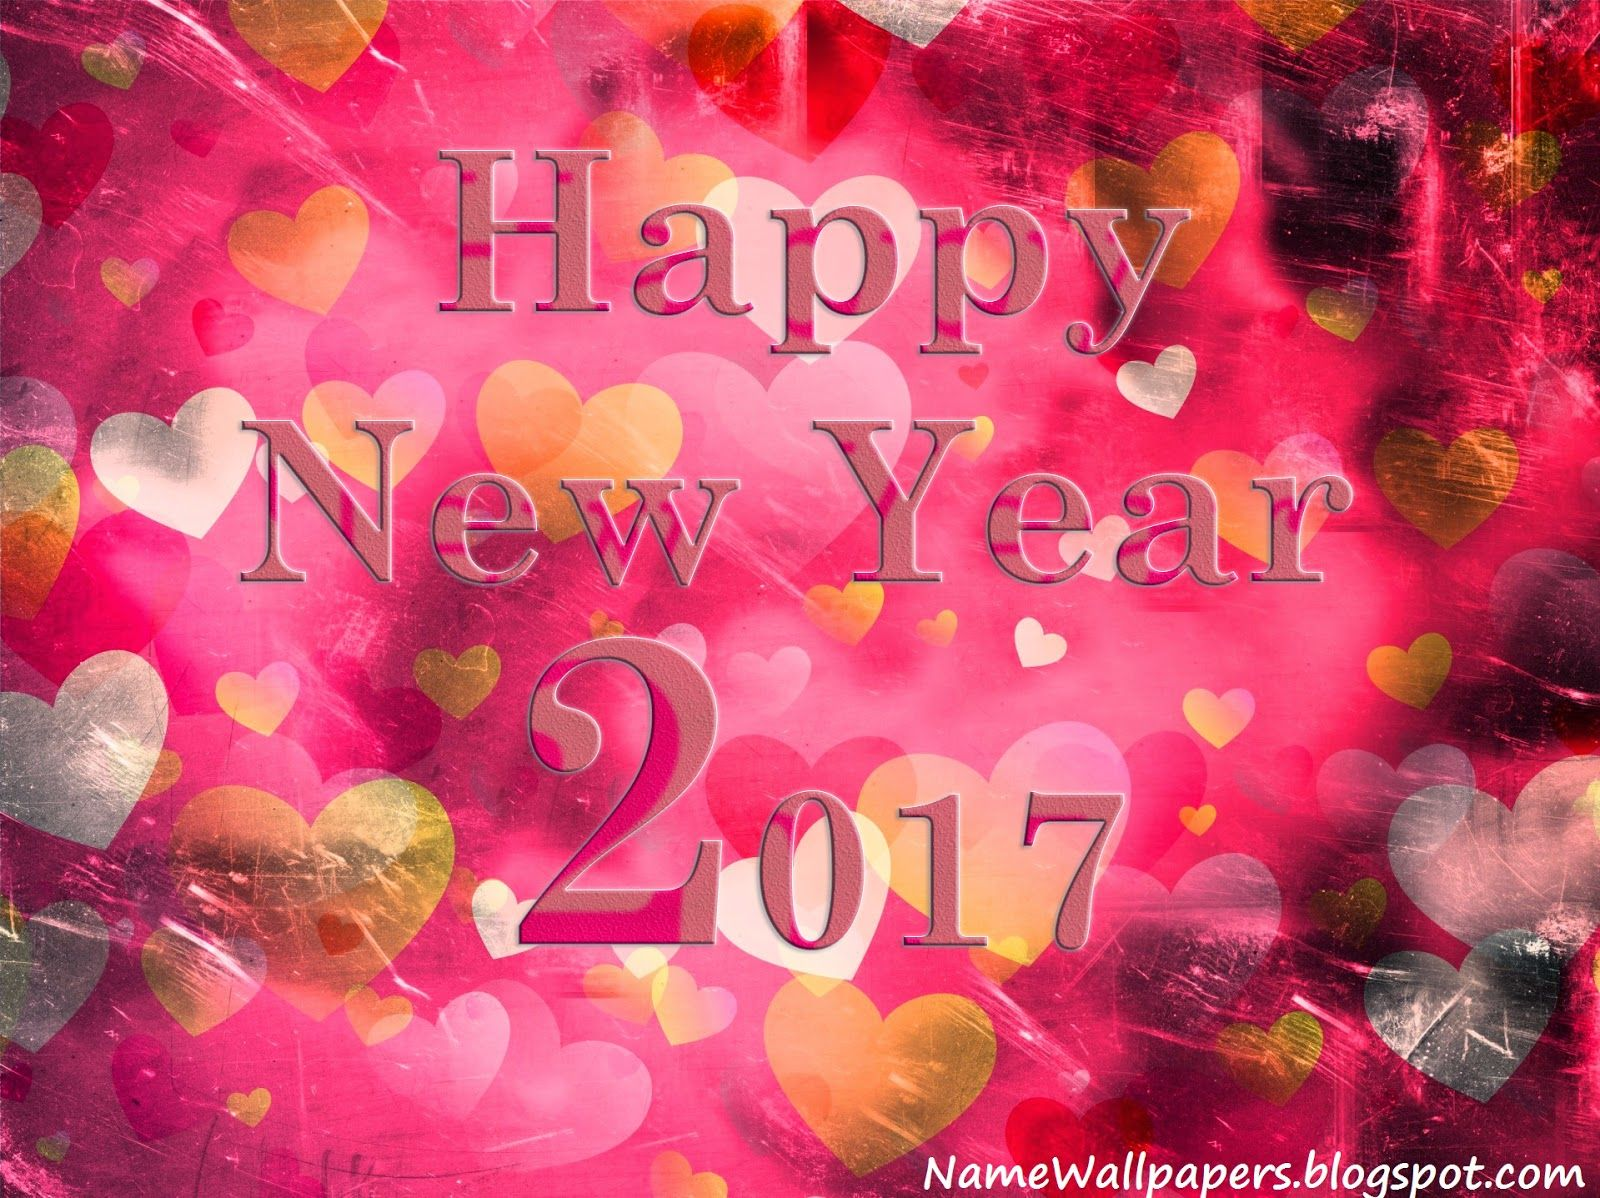 Holiday Wishes Quotes Happy New Year 2017 Wallpapers Hd Images Pictures 2017 Download